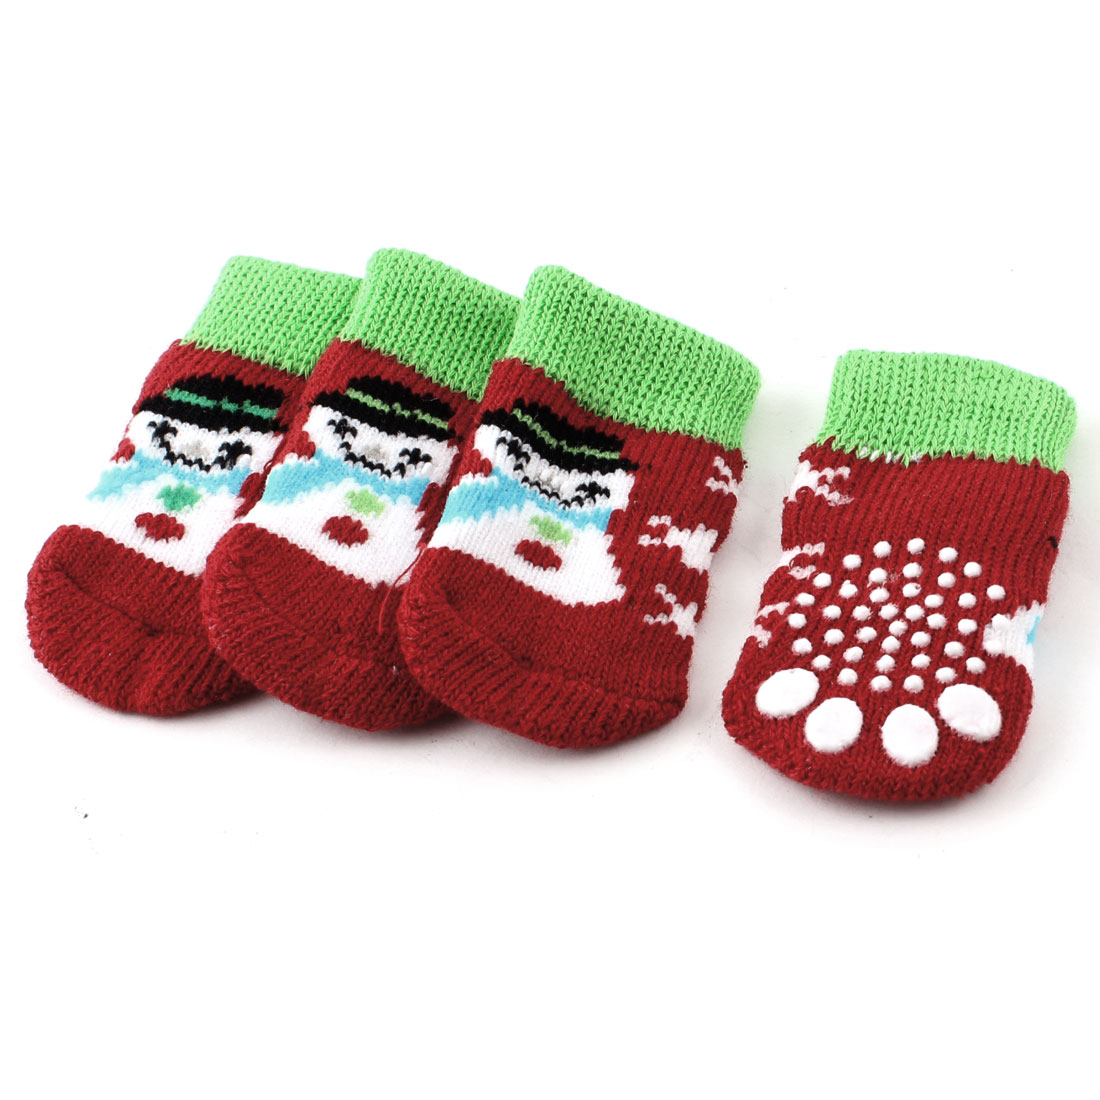 2 Pairs Red Green Knitted Snowman Paw Pattern Nonslip Elastic Pet Dog Socks S